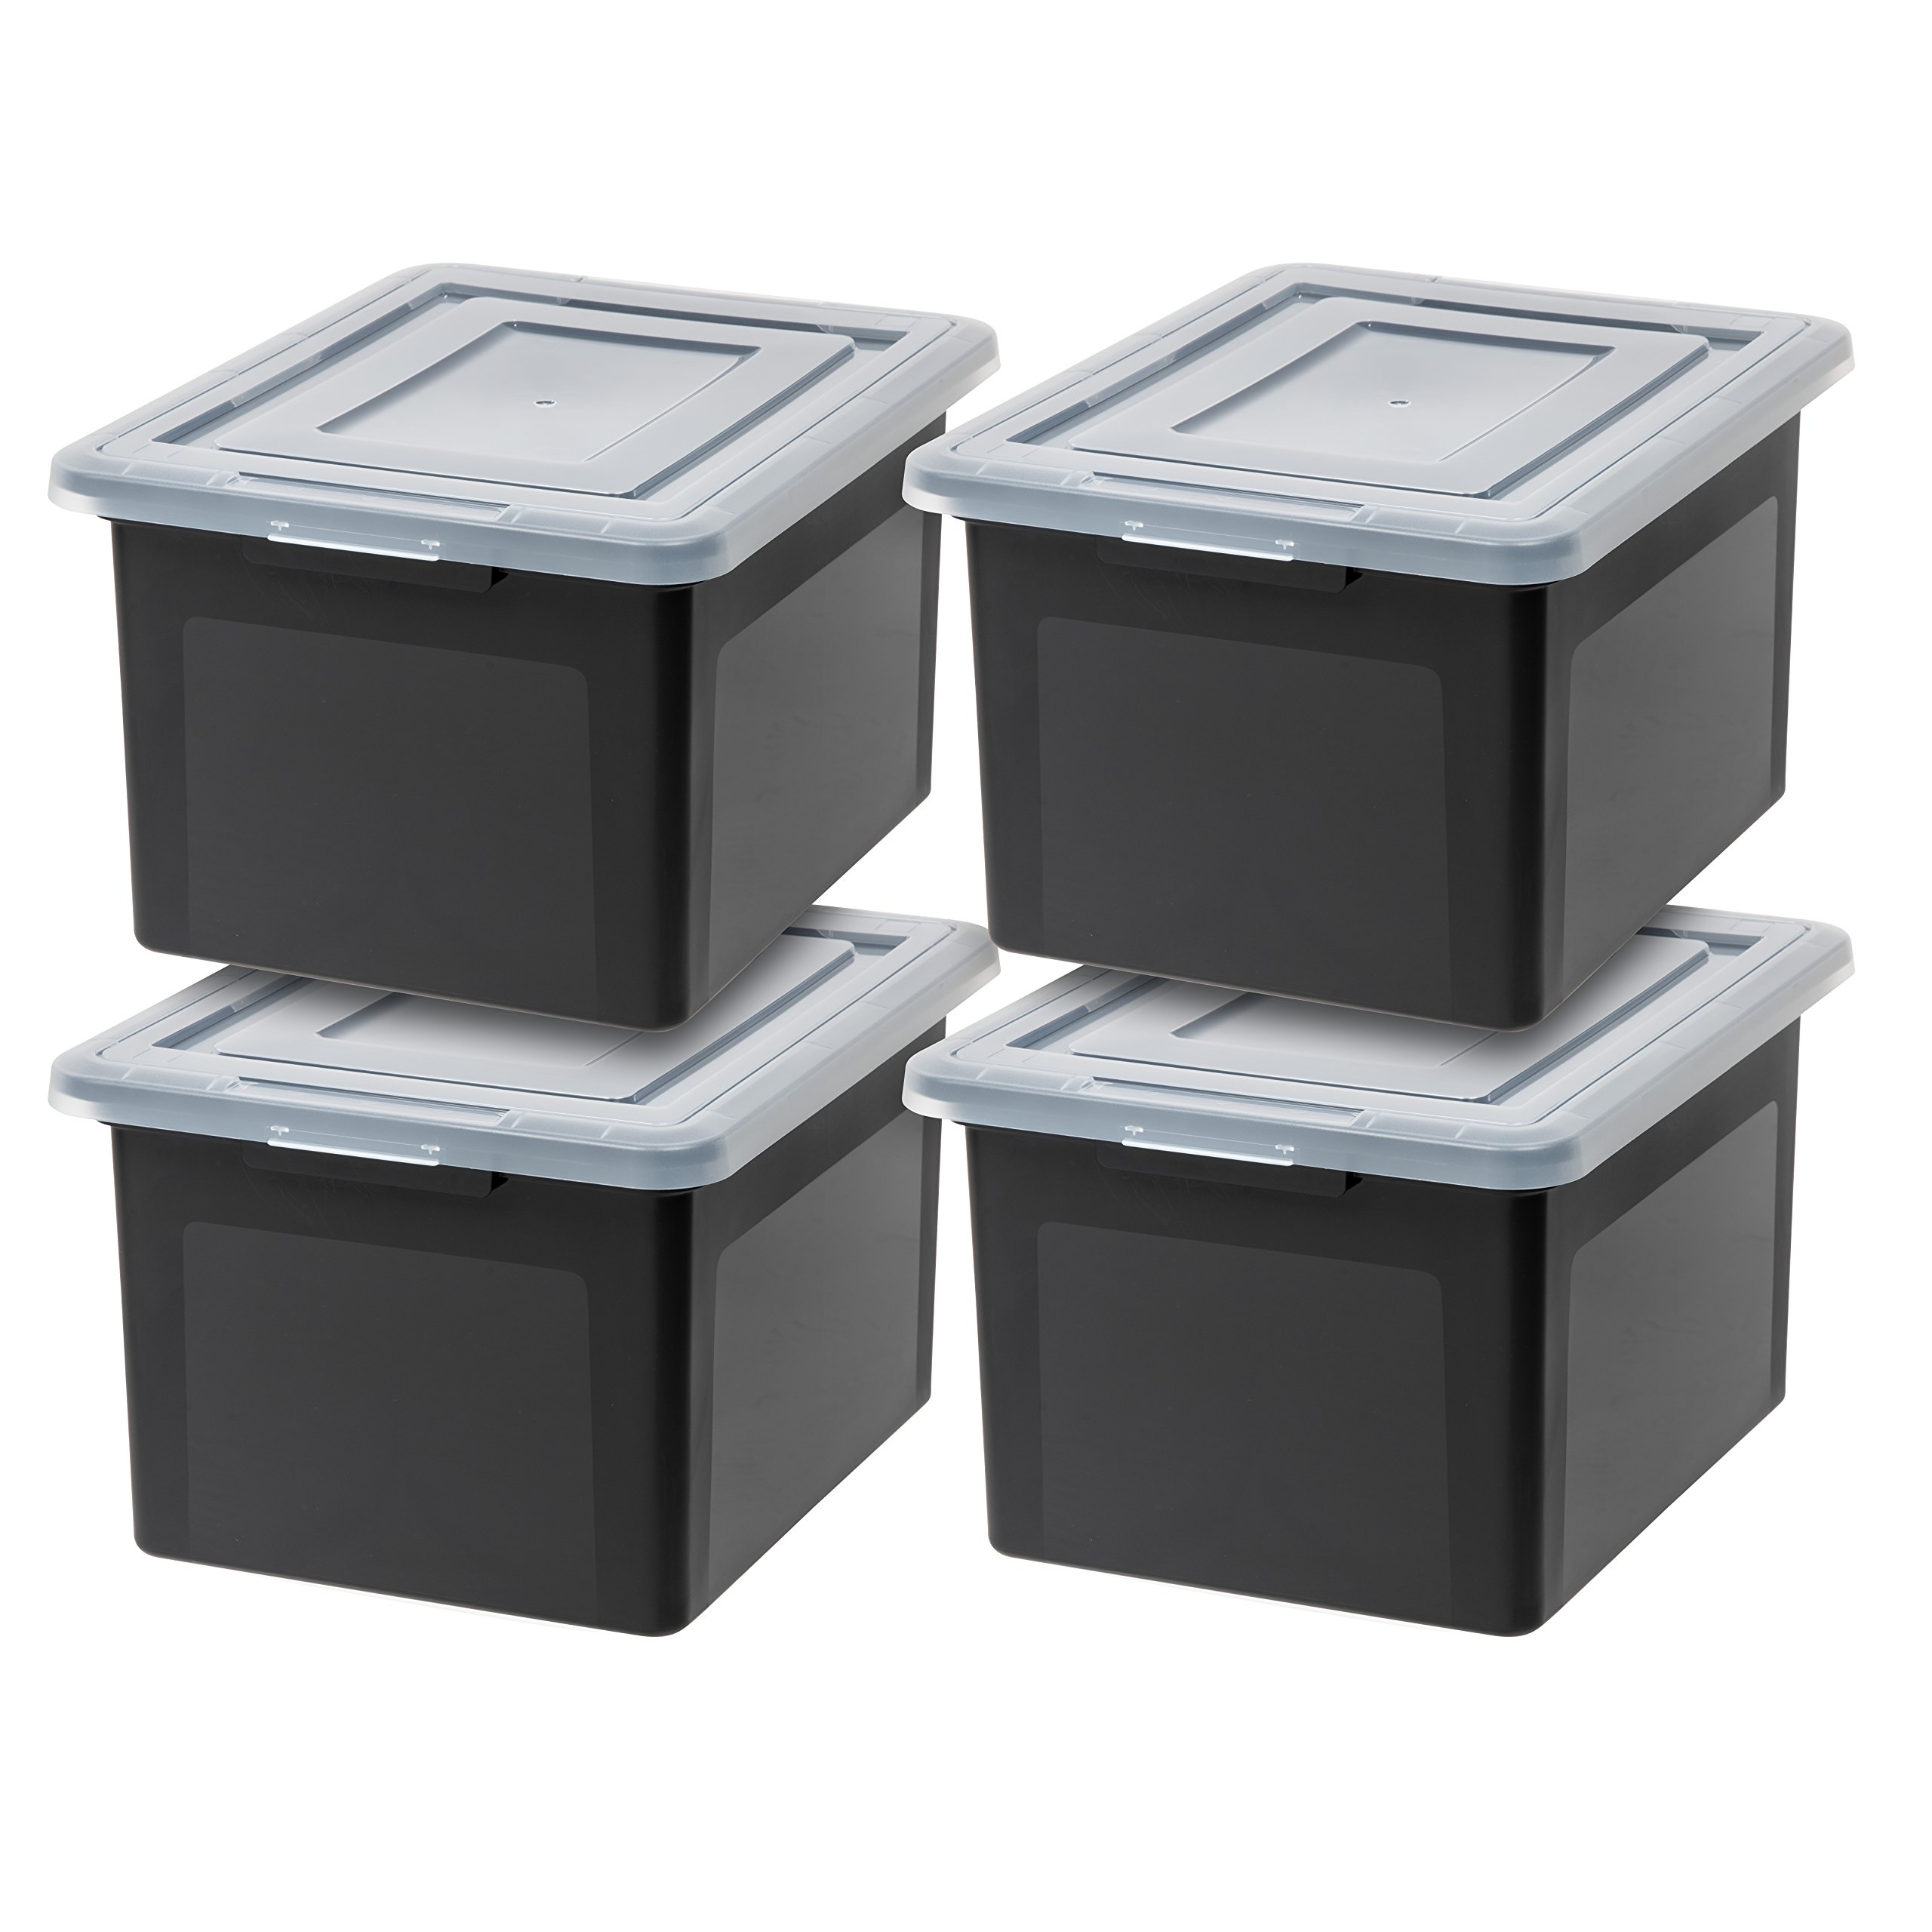 IRIS USA, Inc. R-FB-21E Letter and Legal Size File Box, Black, 4 Pack by IRIS USA, Inc.